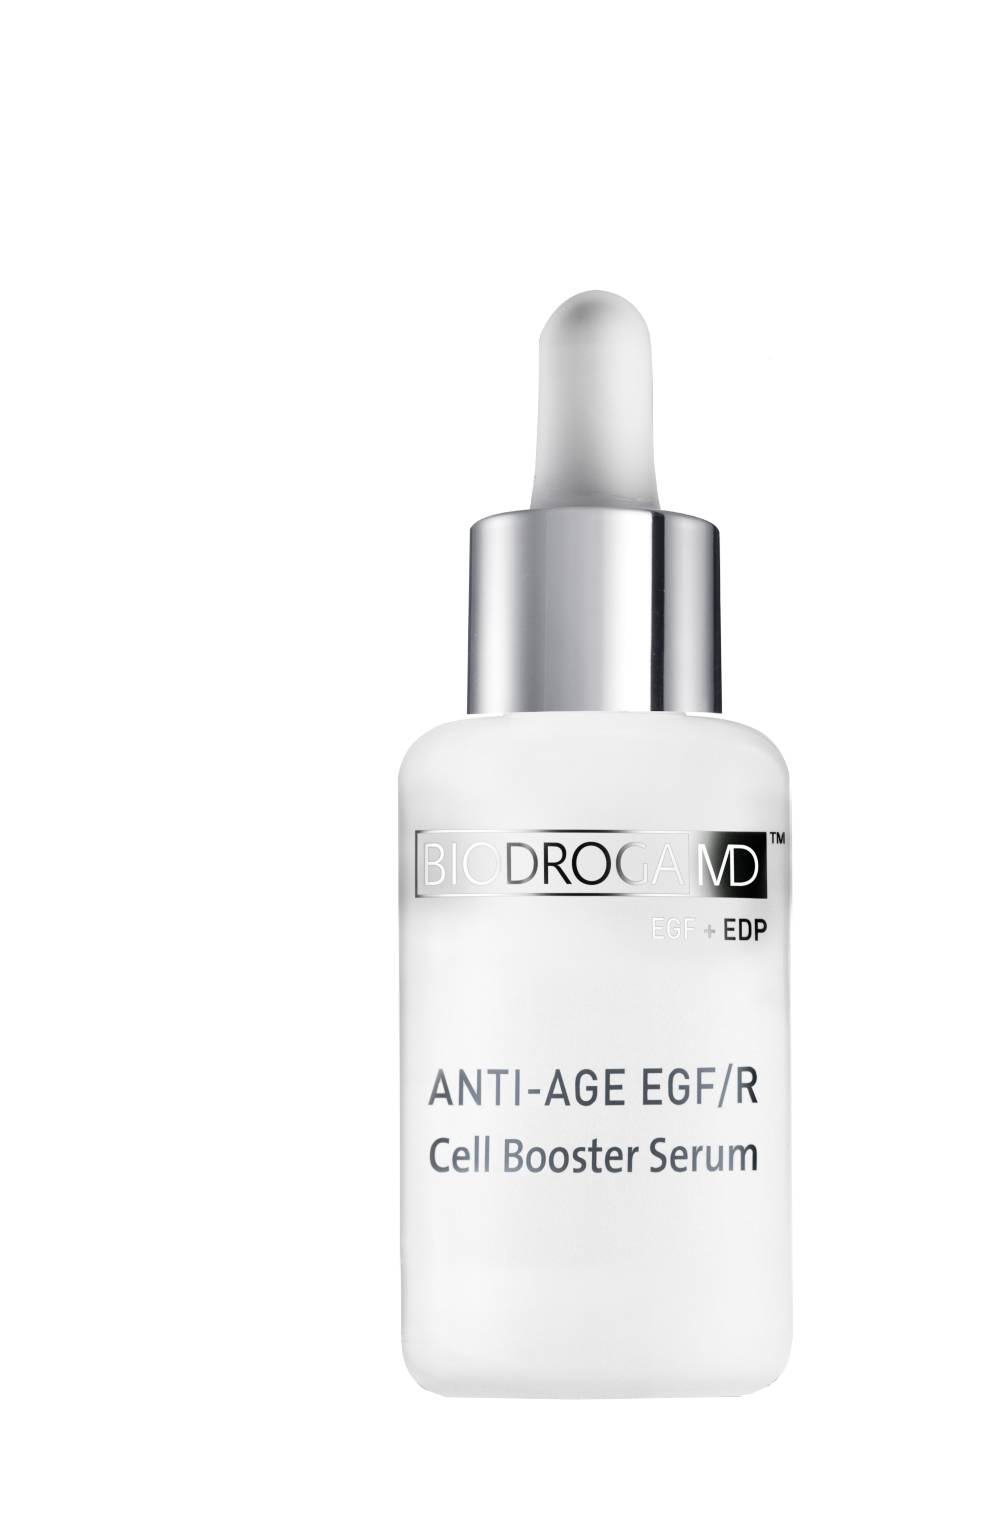 43774_BD_MD_BEH Anti-Age-EGF-R Cell_Booster_Serum 30ml i140229_04_NEU_300dpi